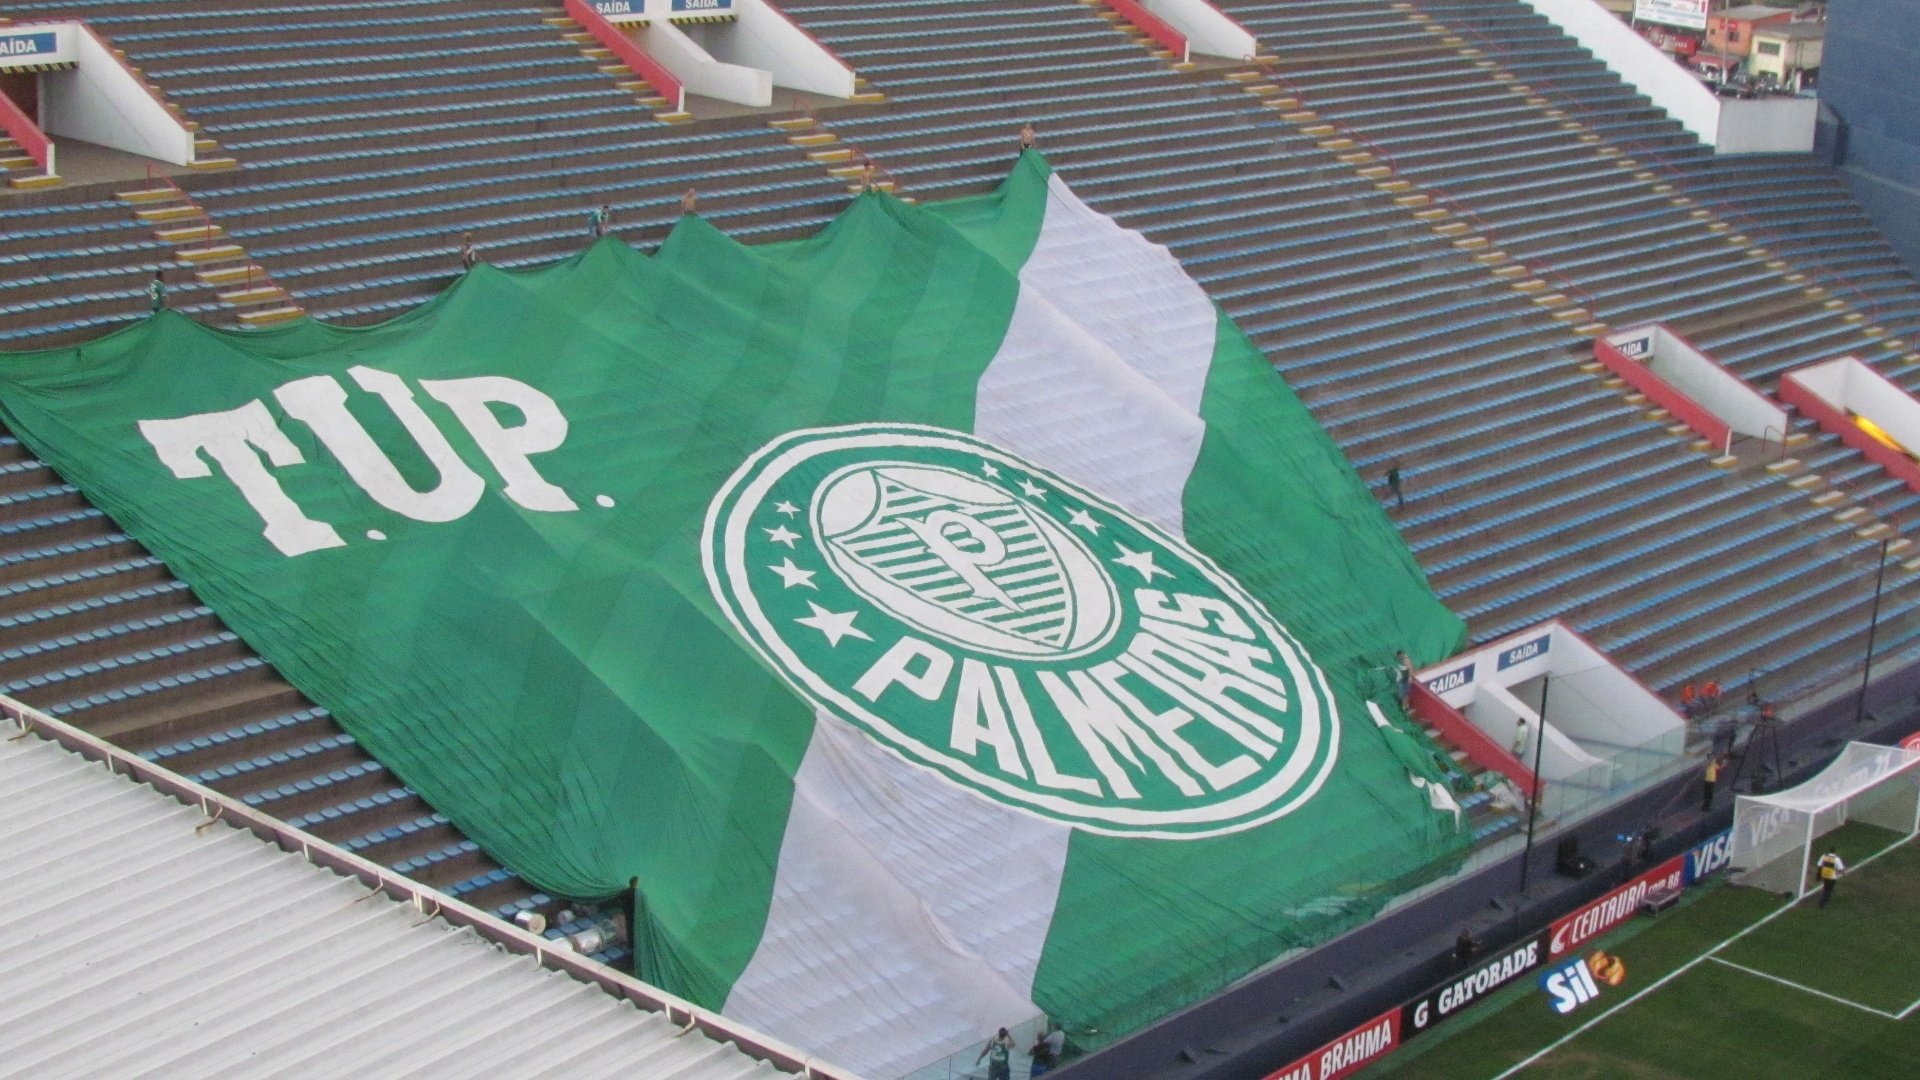 Torcedores do Palmeiras estendem a bandeira e fazem teste na arquibancada de Barueri